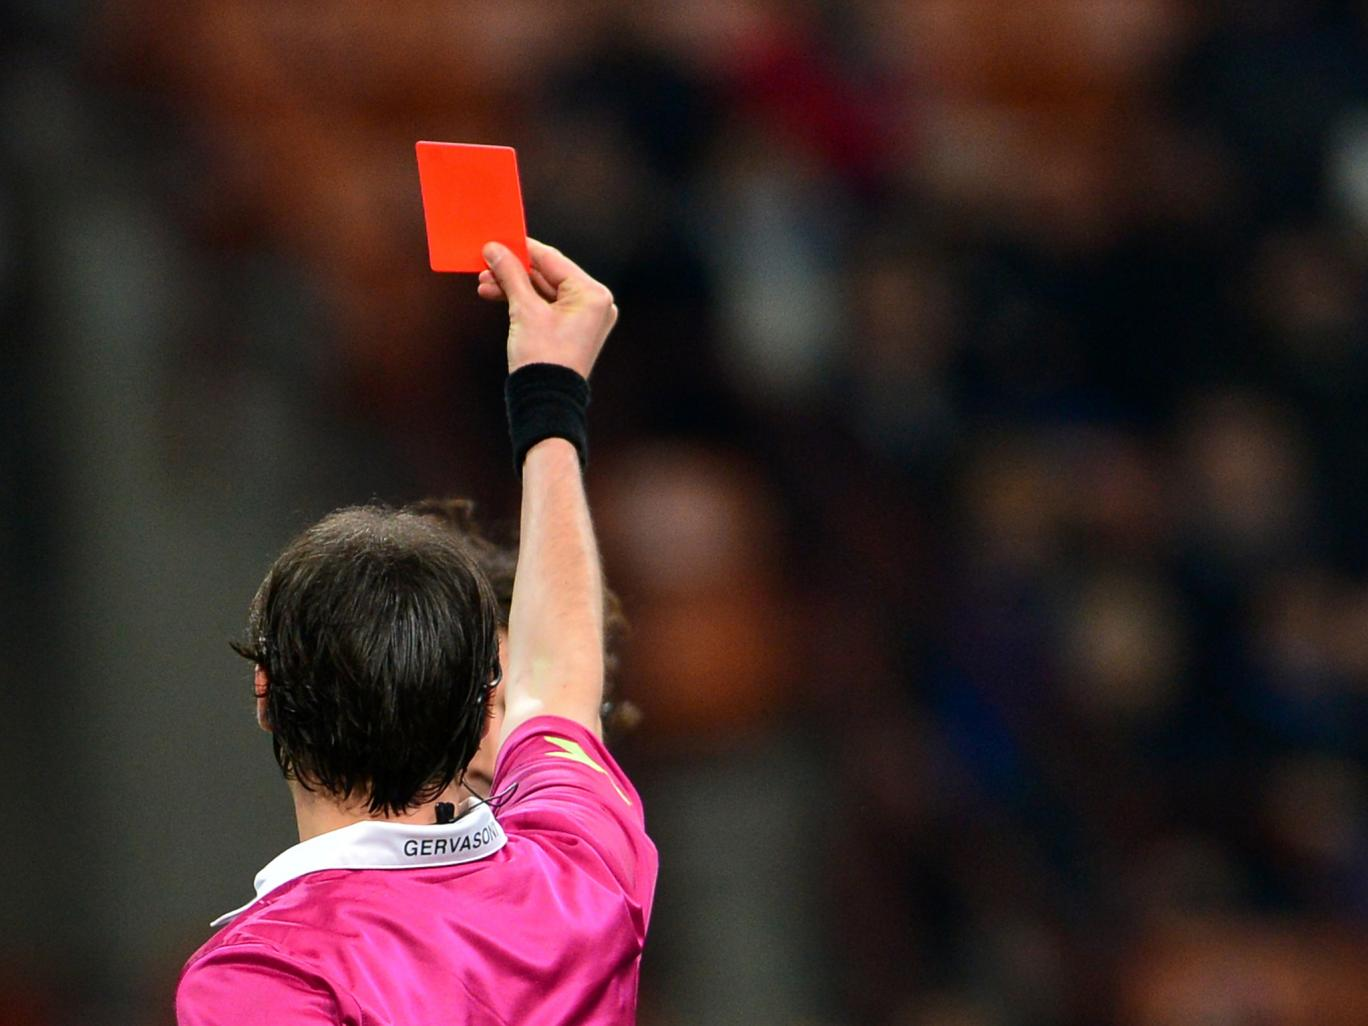 Argentinian Referee Shot Dead By 'Angry' Player After Giving Red Card